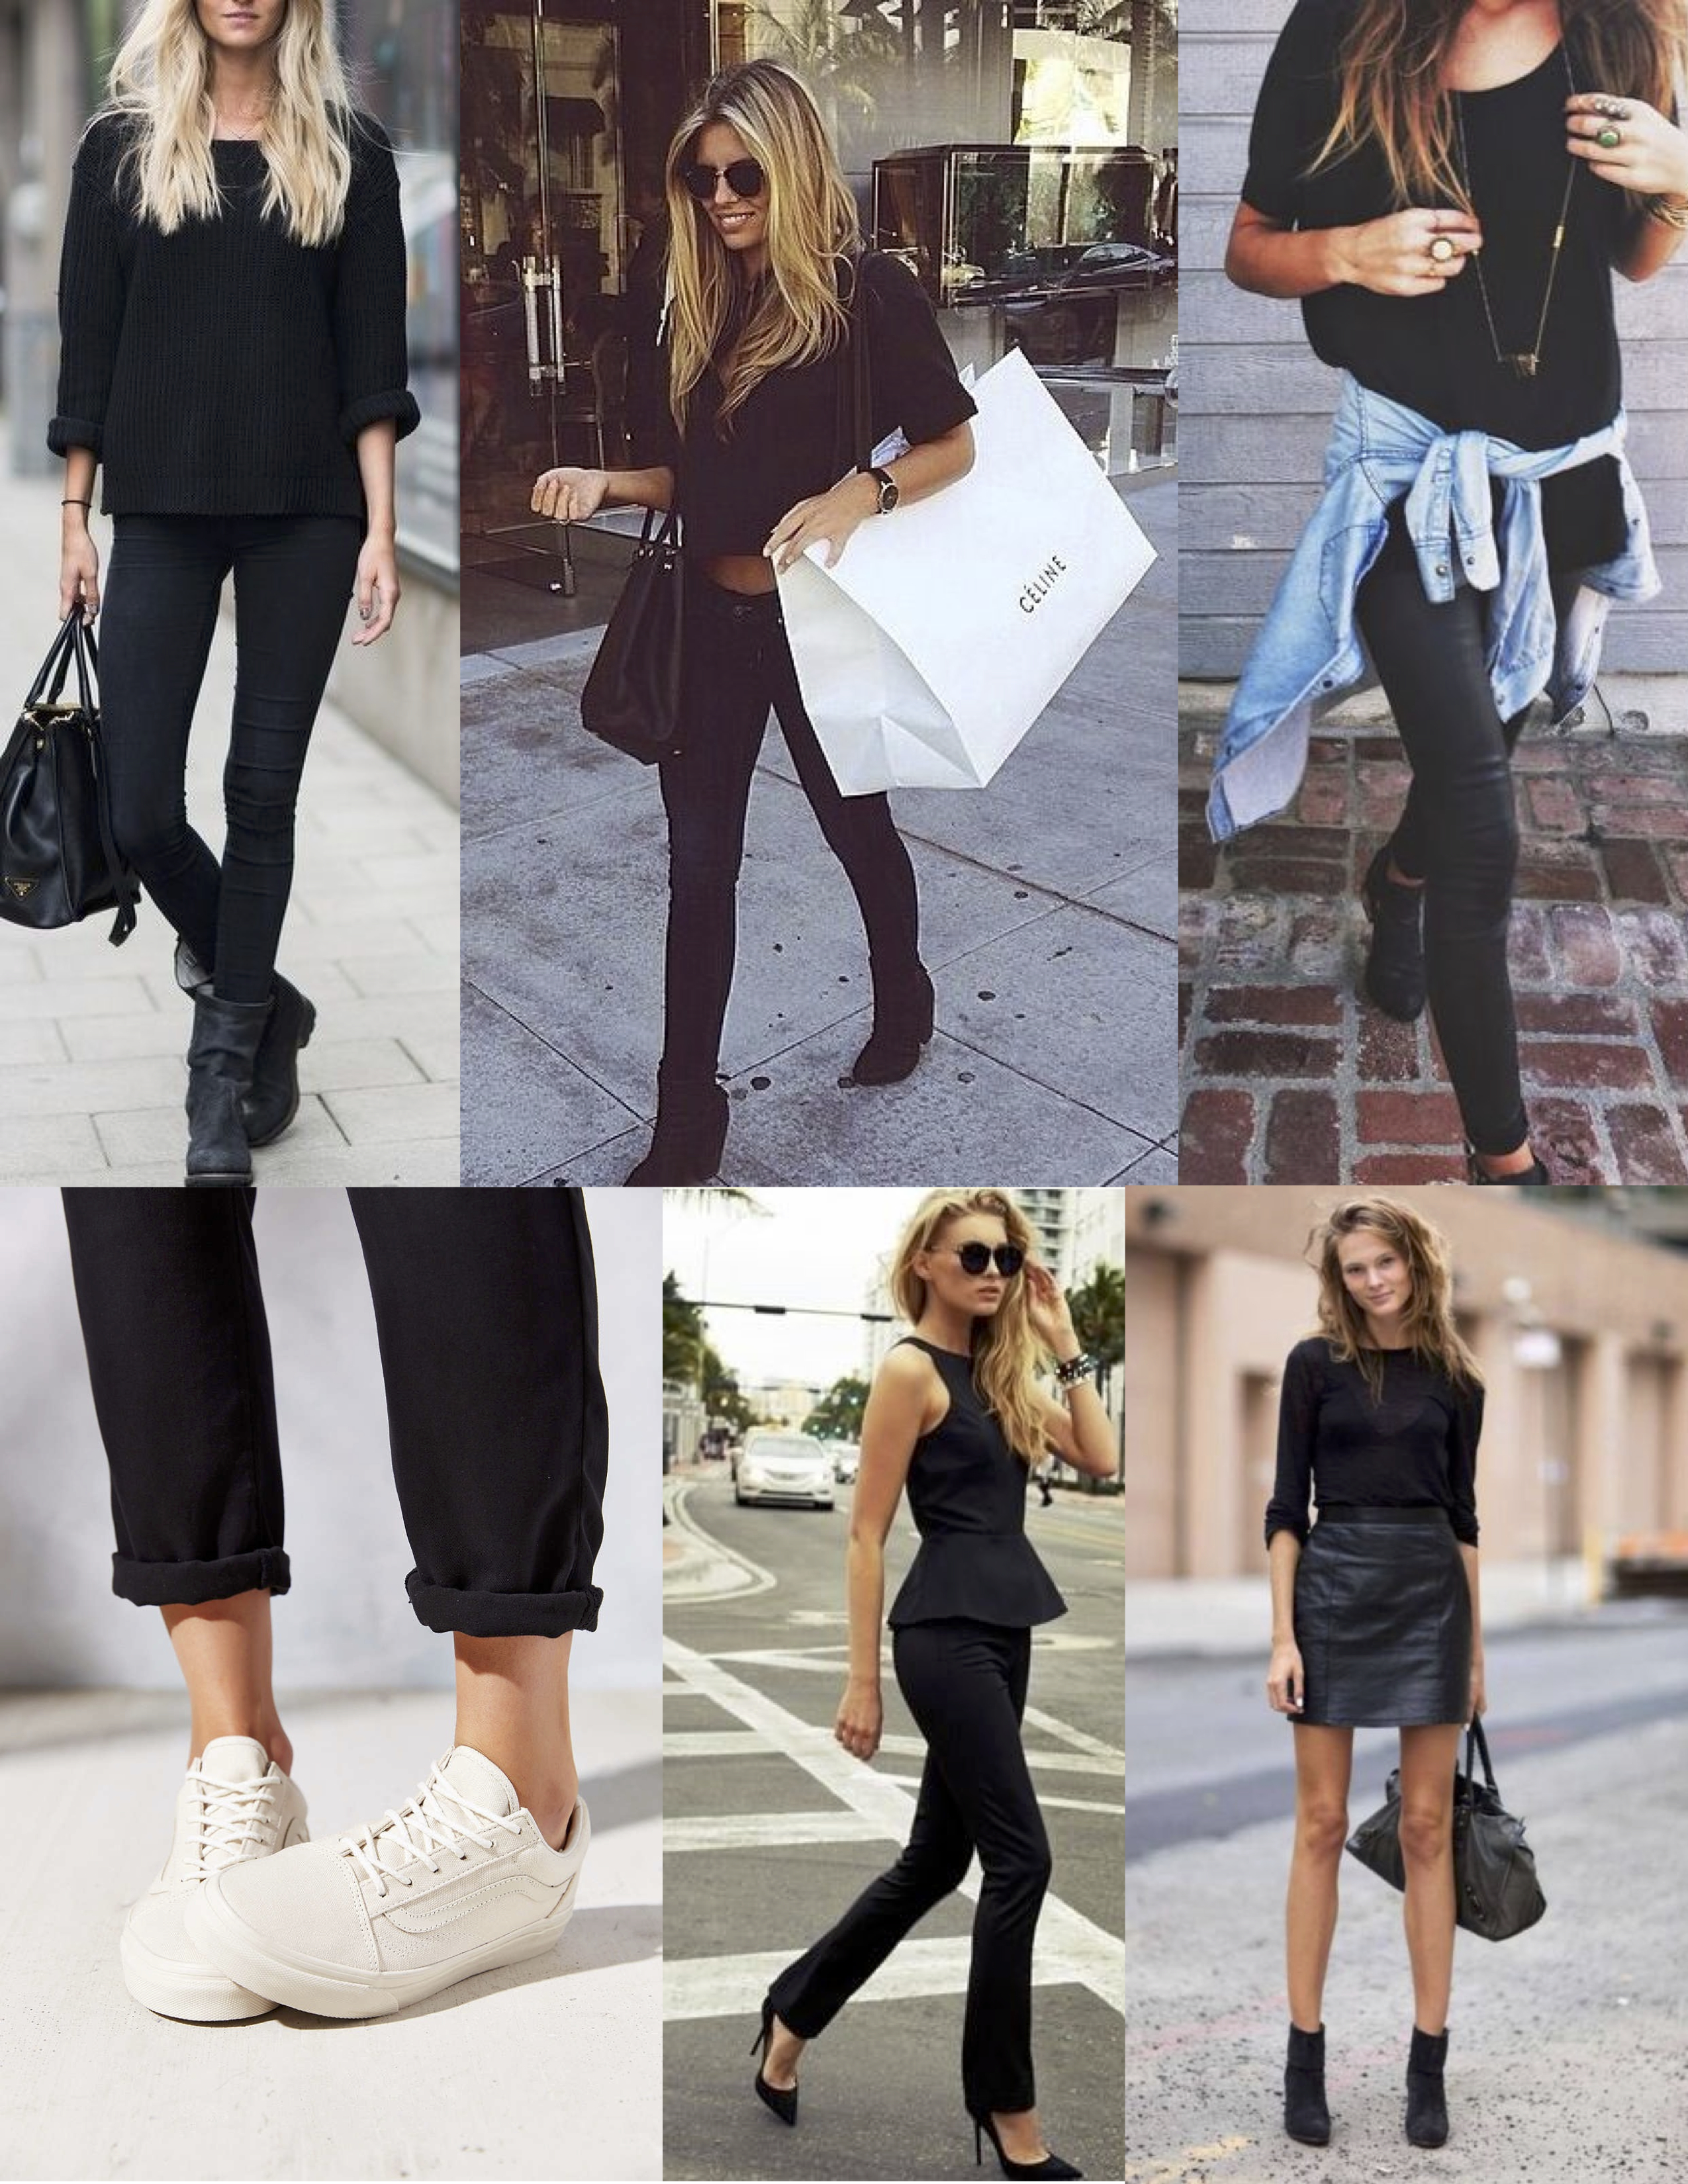 Black Casual Outfits   www.pixshark.com - Images Galleries With A Bite!